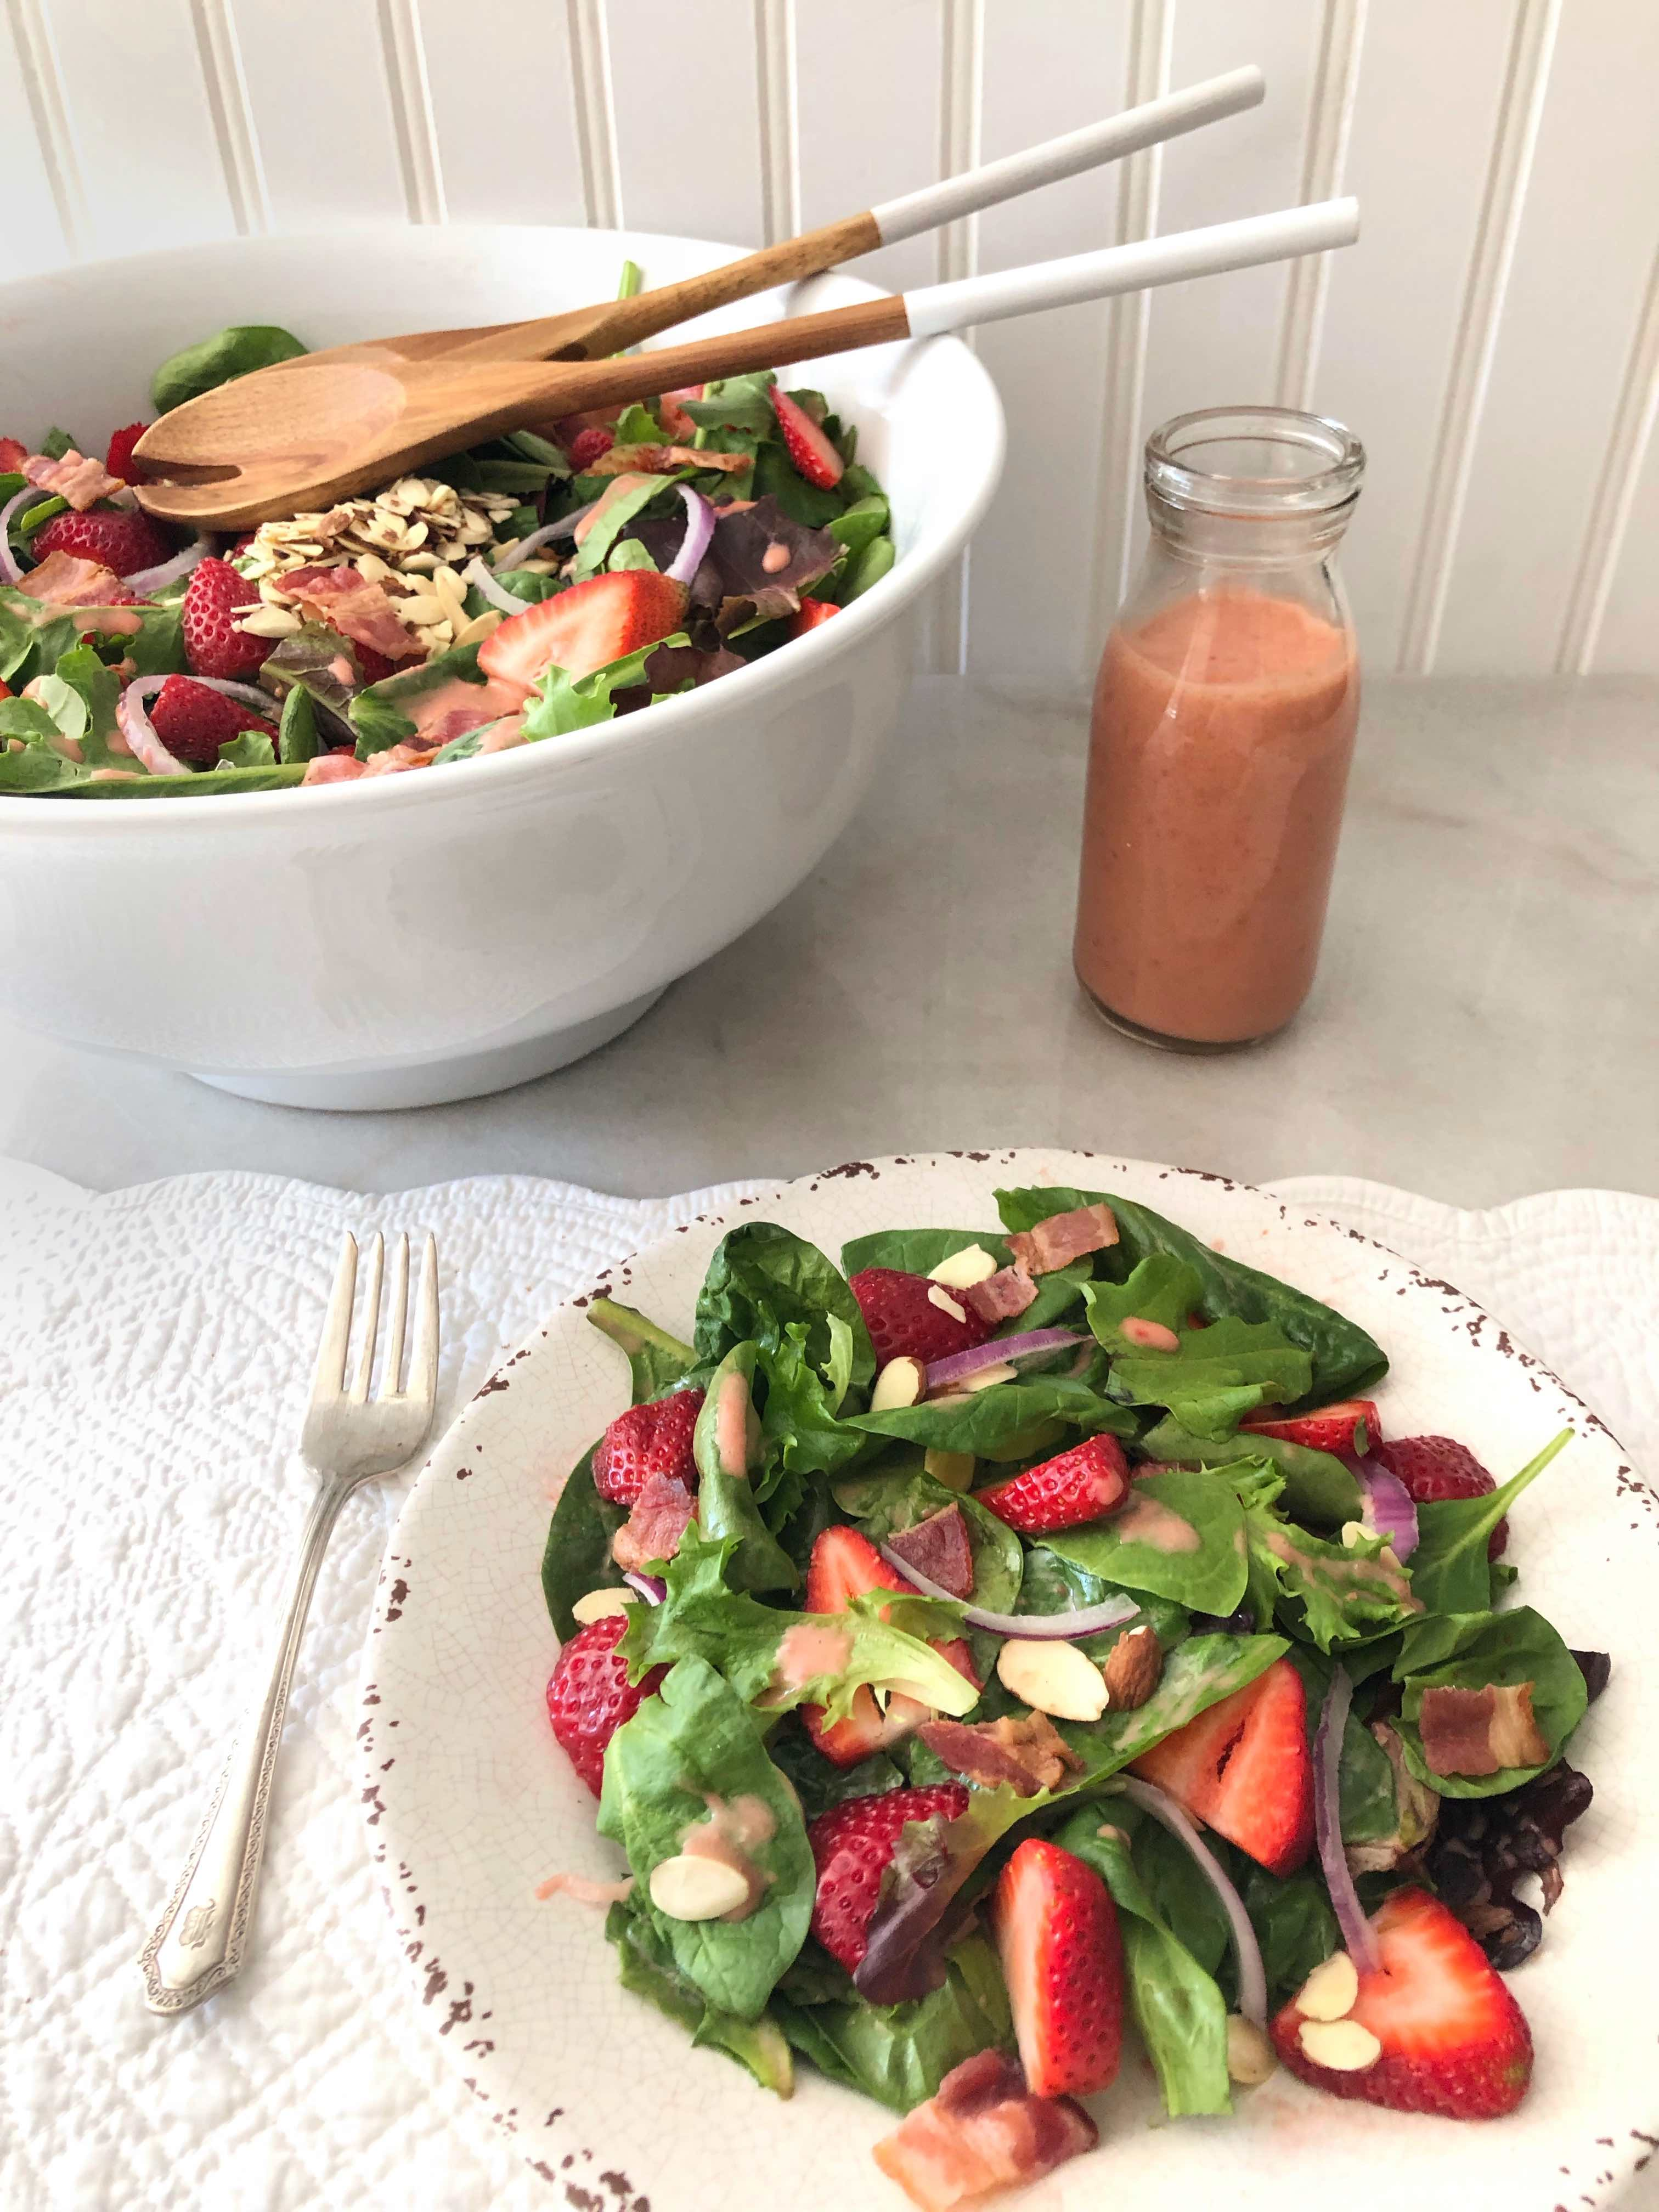 salad tongs sitting in bowl full of strawberry spinach salad with single plate in foreground.